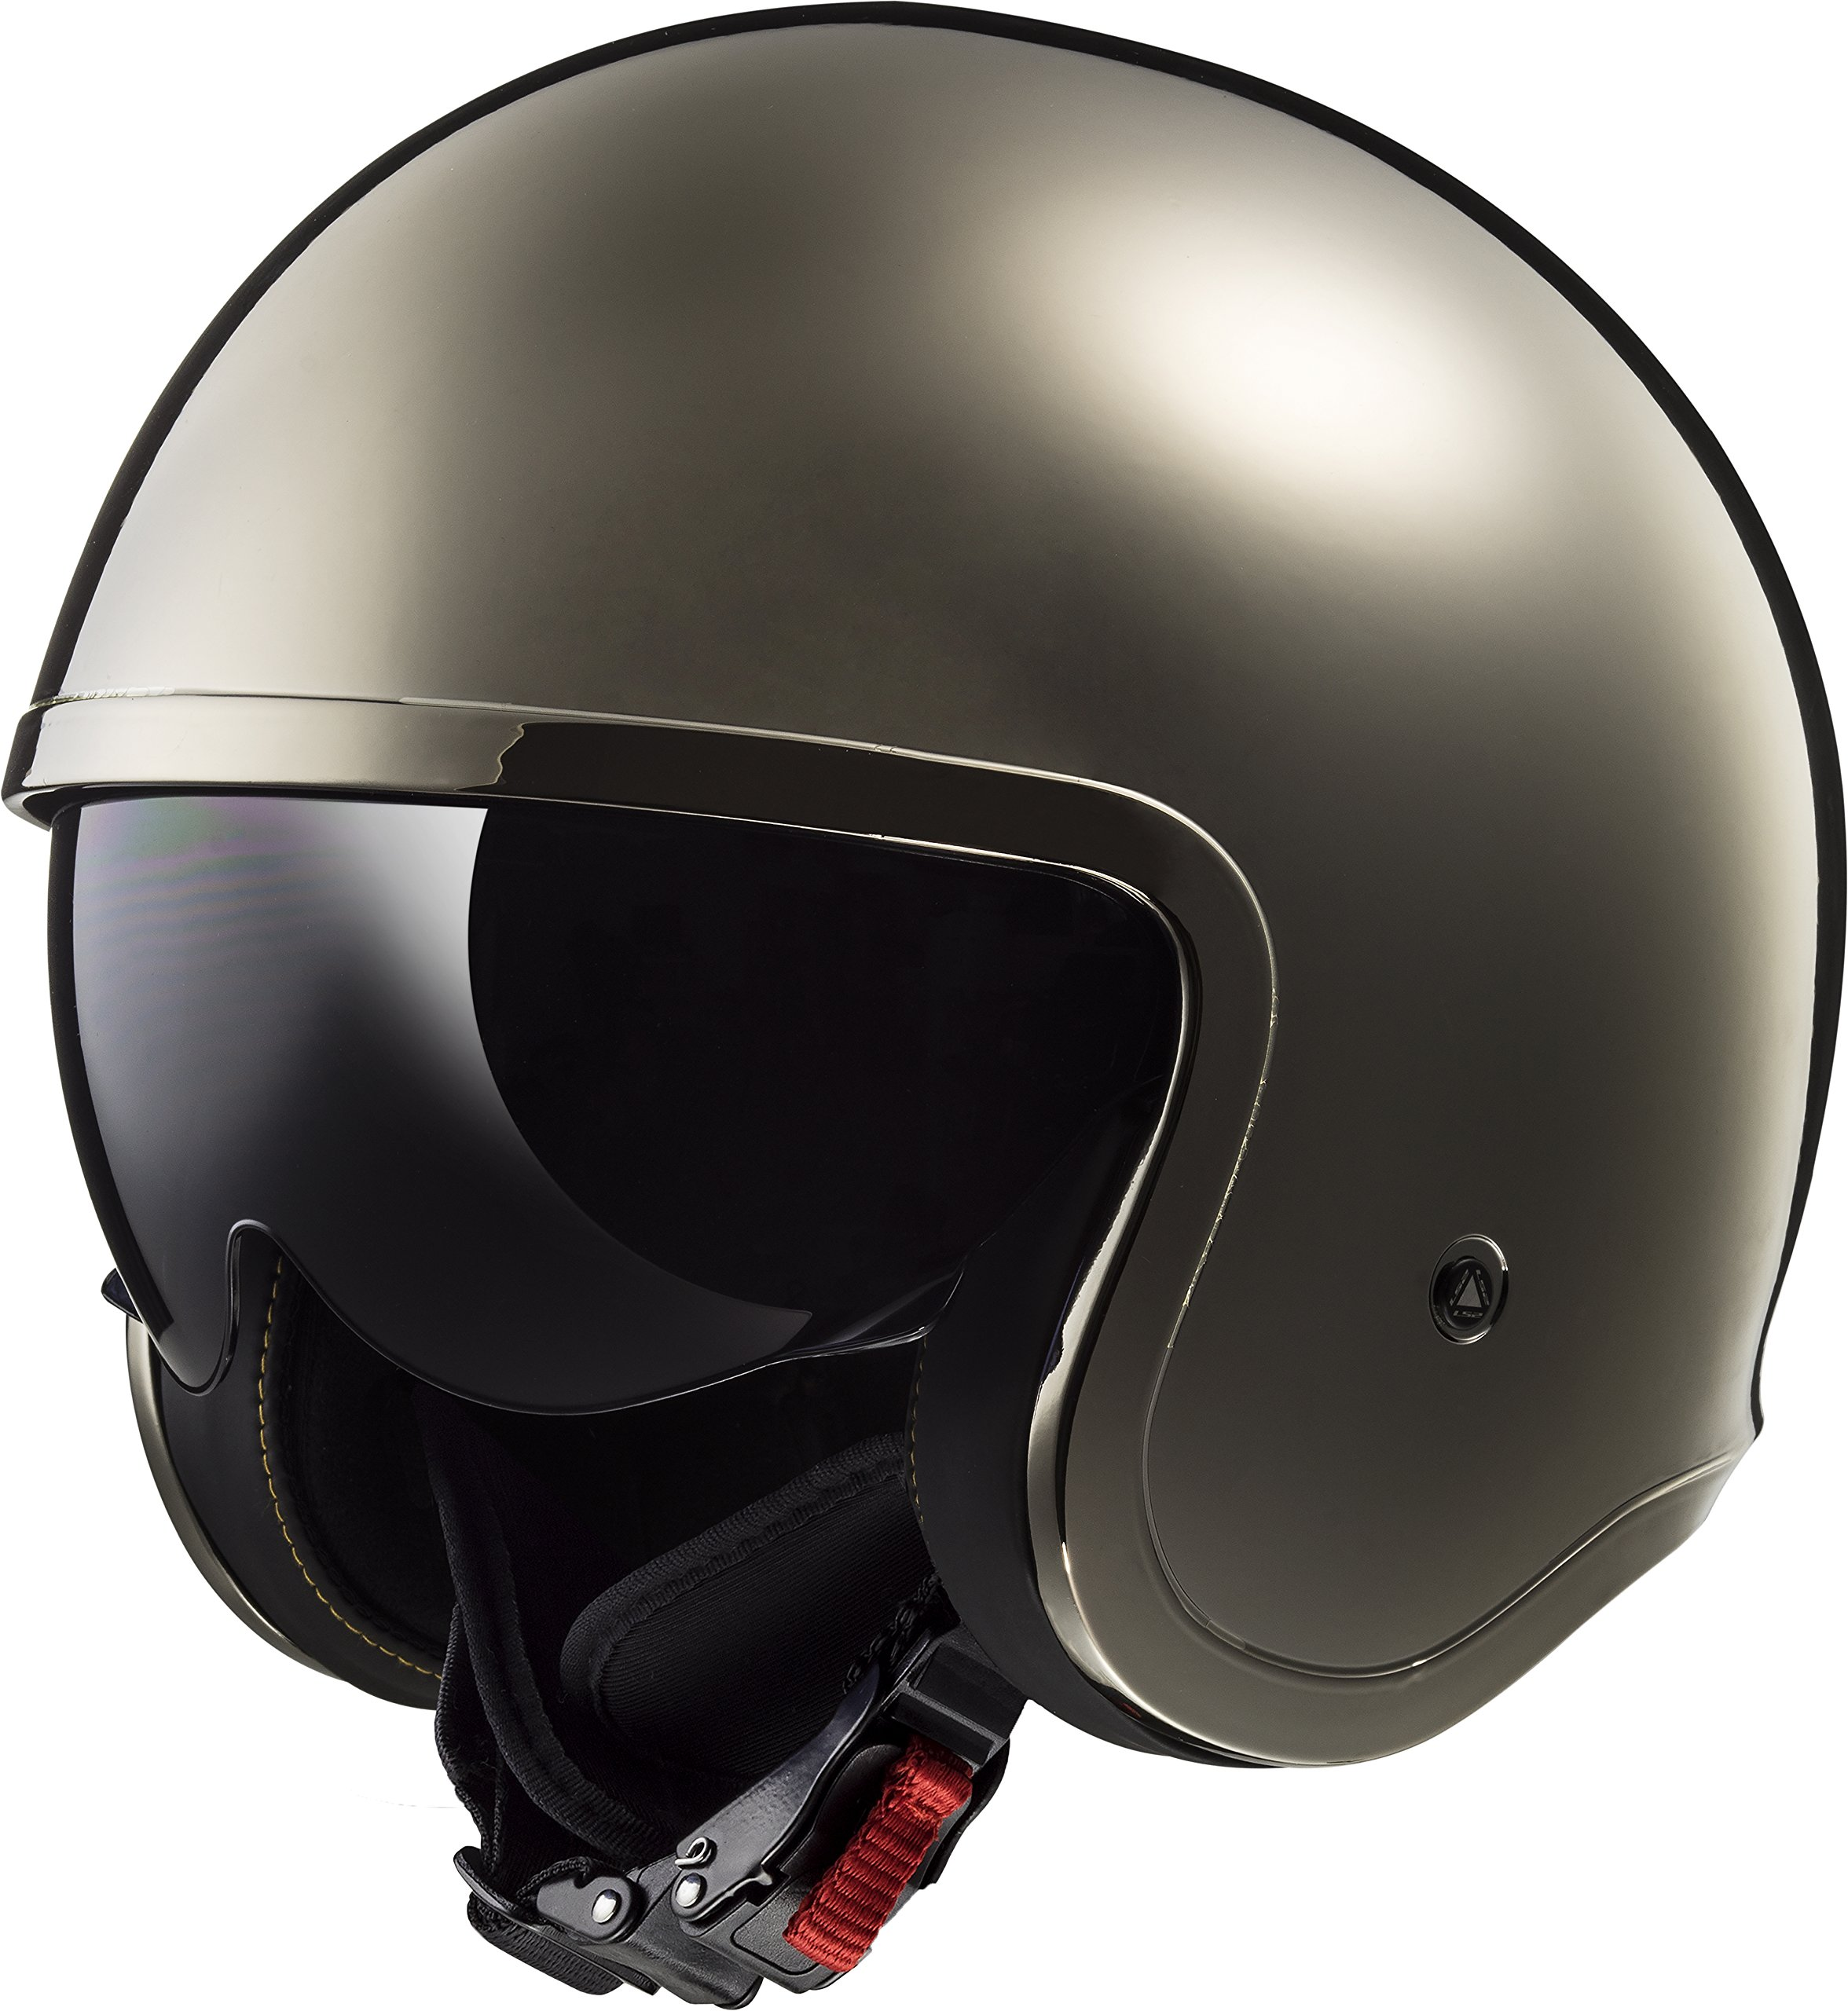 Galleon ls2 helmets motorcycle s solid spitfire black chrome medium